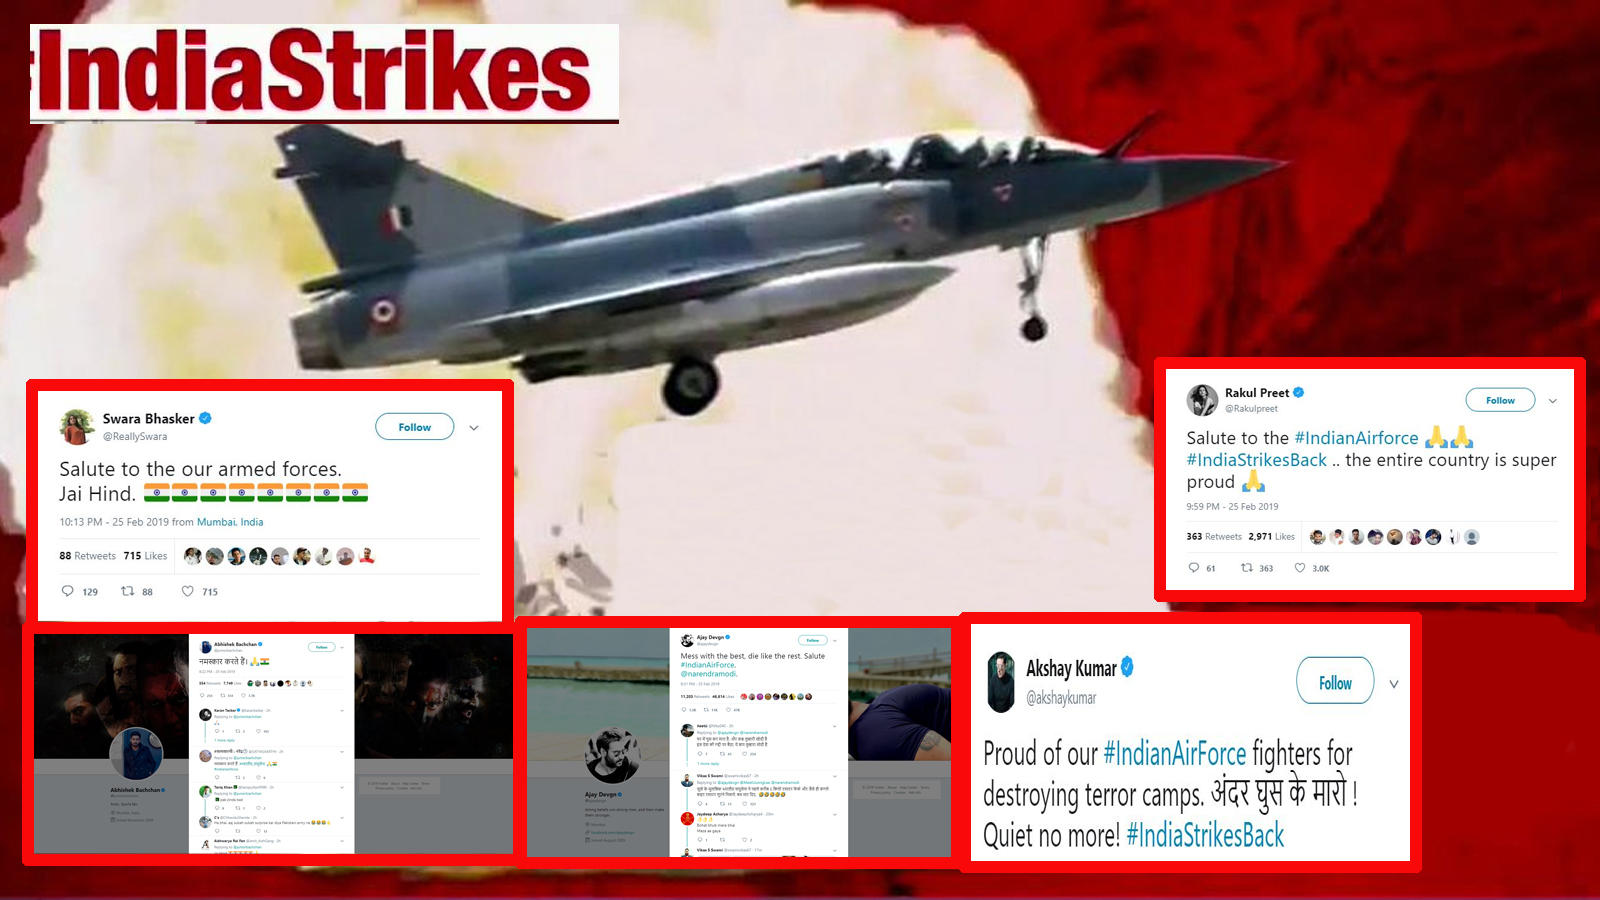 Indian Air Force strikes in Pakistan: Bollywood celebs laud armed forces after Balakot air strike